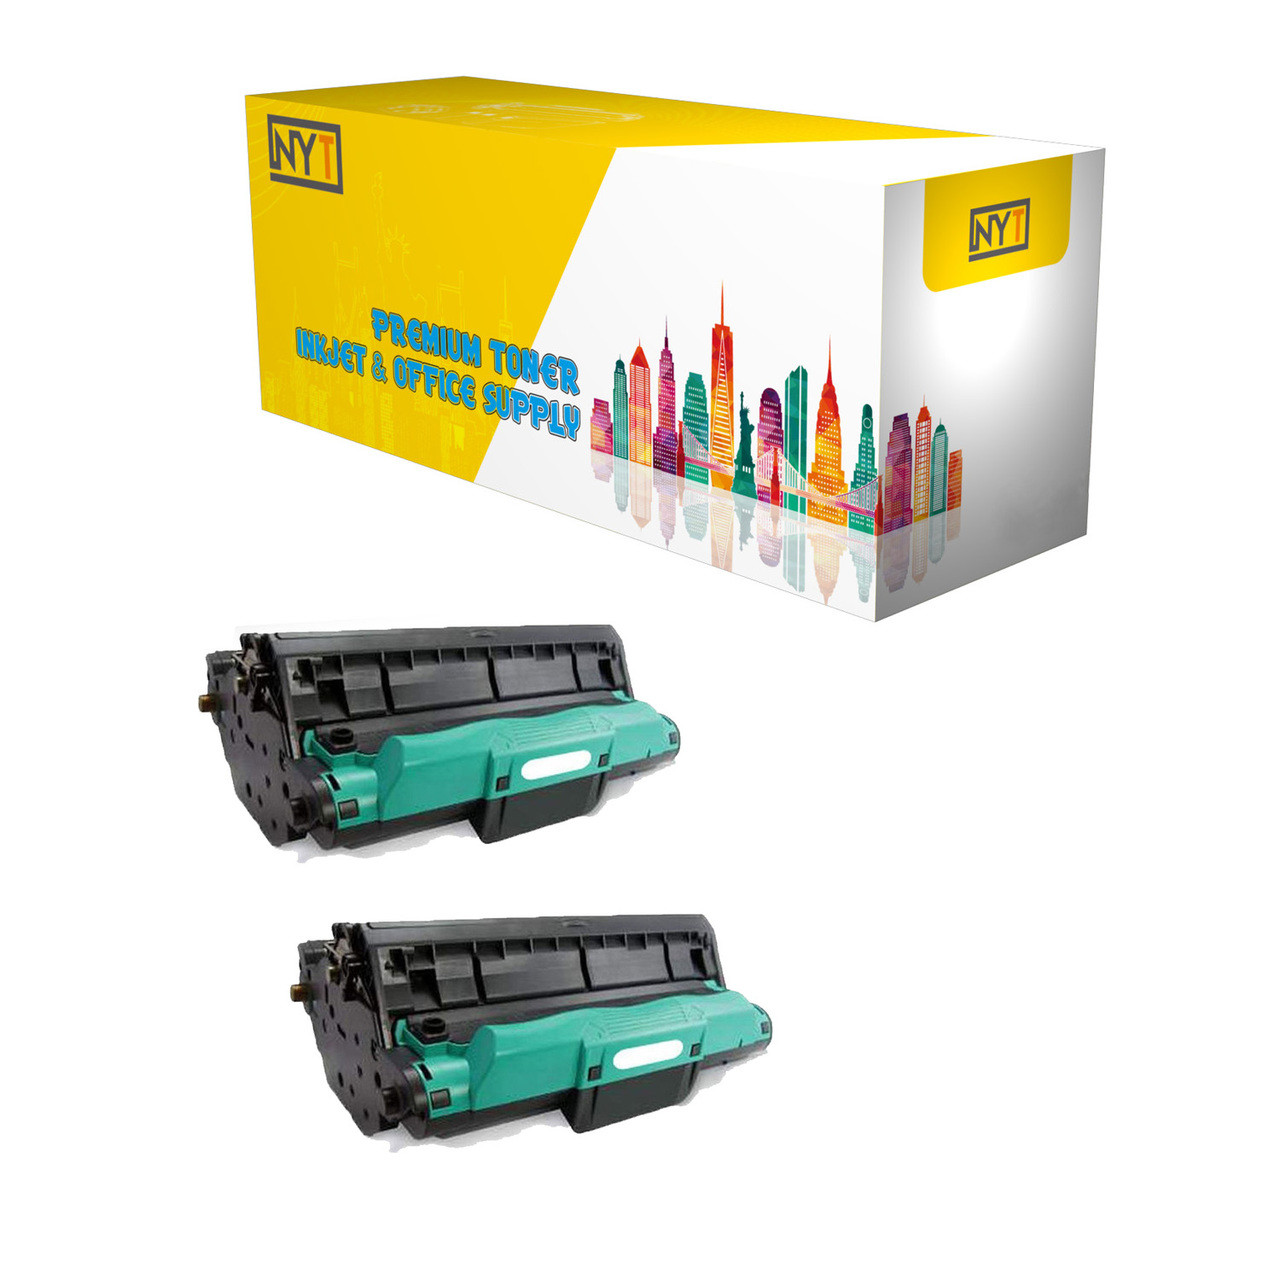 New York Toner New CE314A Compatible Drum Cartridges for HP Color LaserJet  Pro: 100 MFP M175nw, CP1025nw, M275 - 2 Black